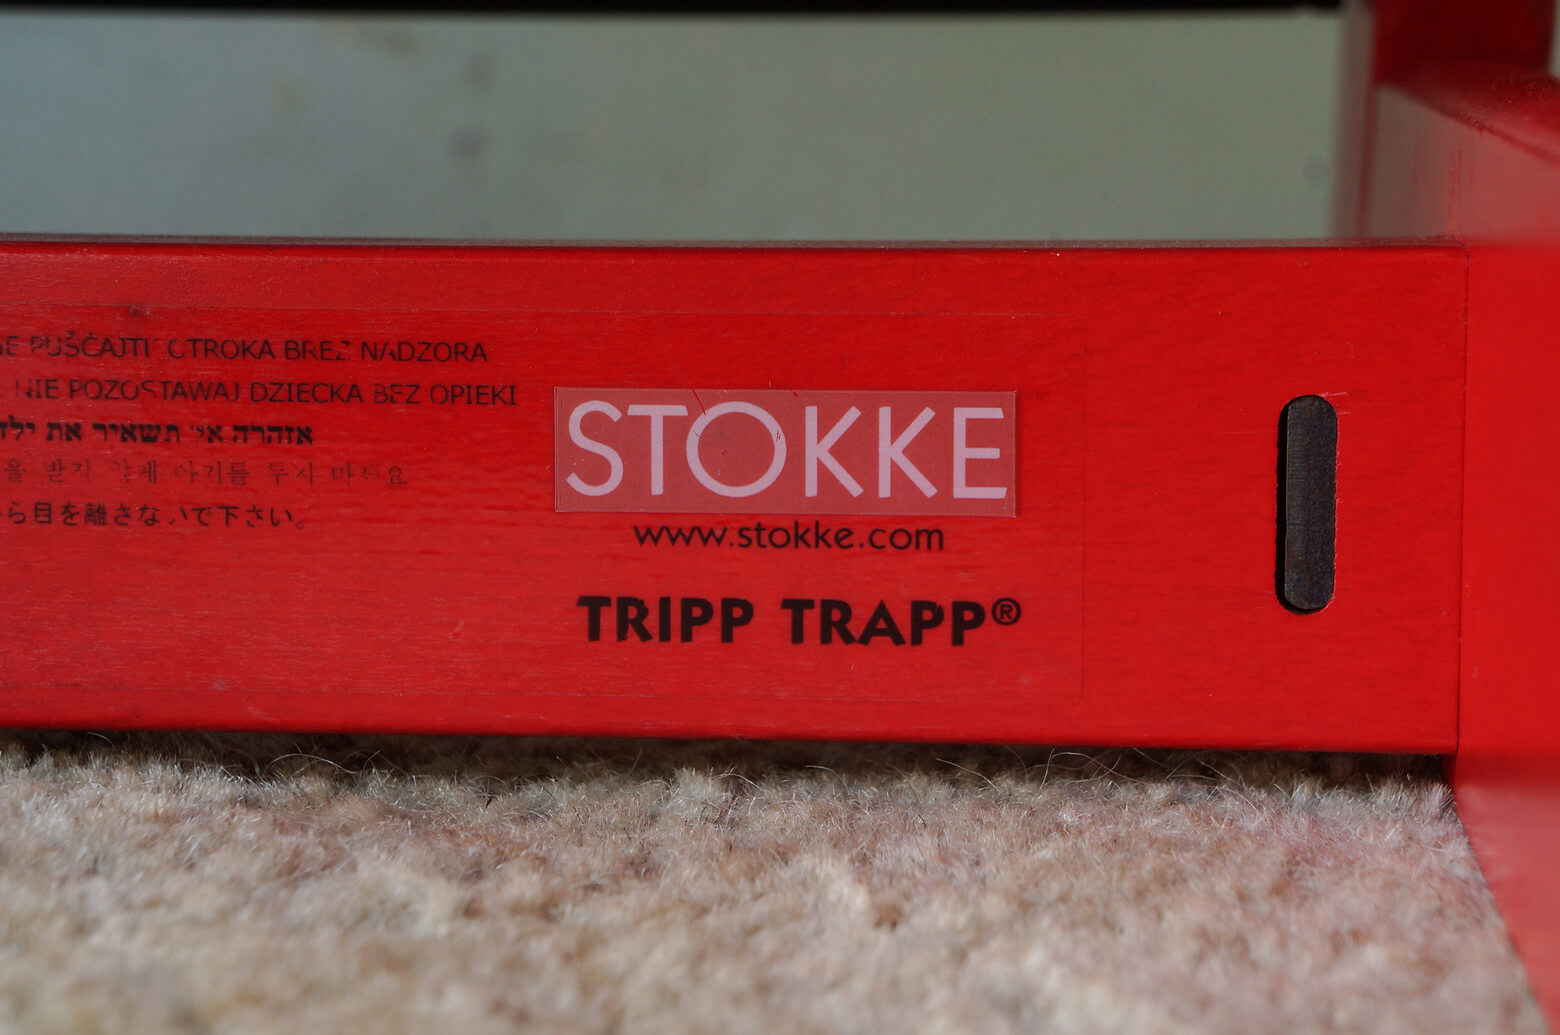 STOKKE TRIPP TRAPP Baby Chair Red/ストッケ トリップトラップ ベビーチェア ハイチェア レッド 北欧デザイン